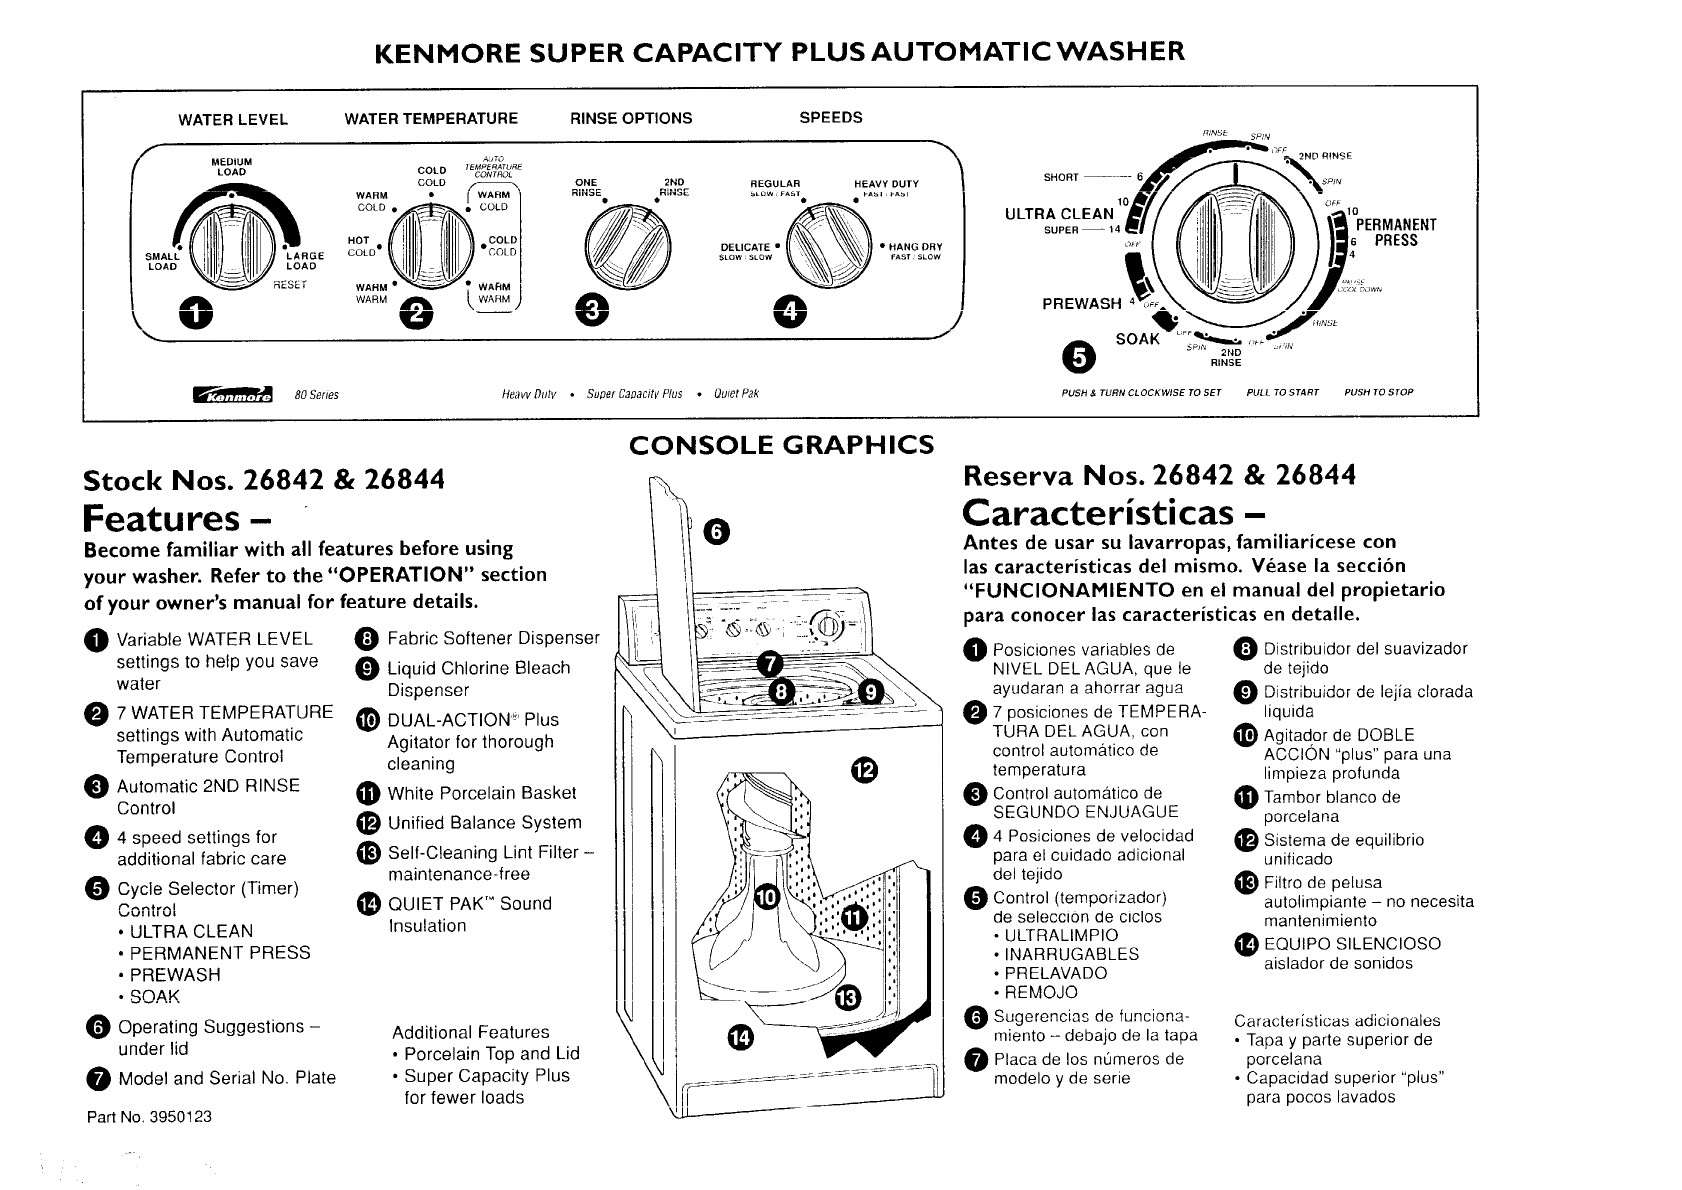 kenmore washer wiring diagram diagram collections wiring diagram with kenmore 80 series dryer parts diagram 80 series wiring diagram power wiring diagram \u2022 free wiring sears kenmore washer model 110 wiring diagram at aneh.co